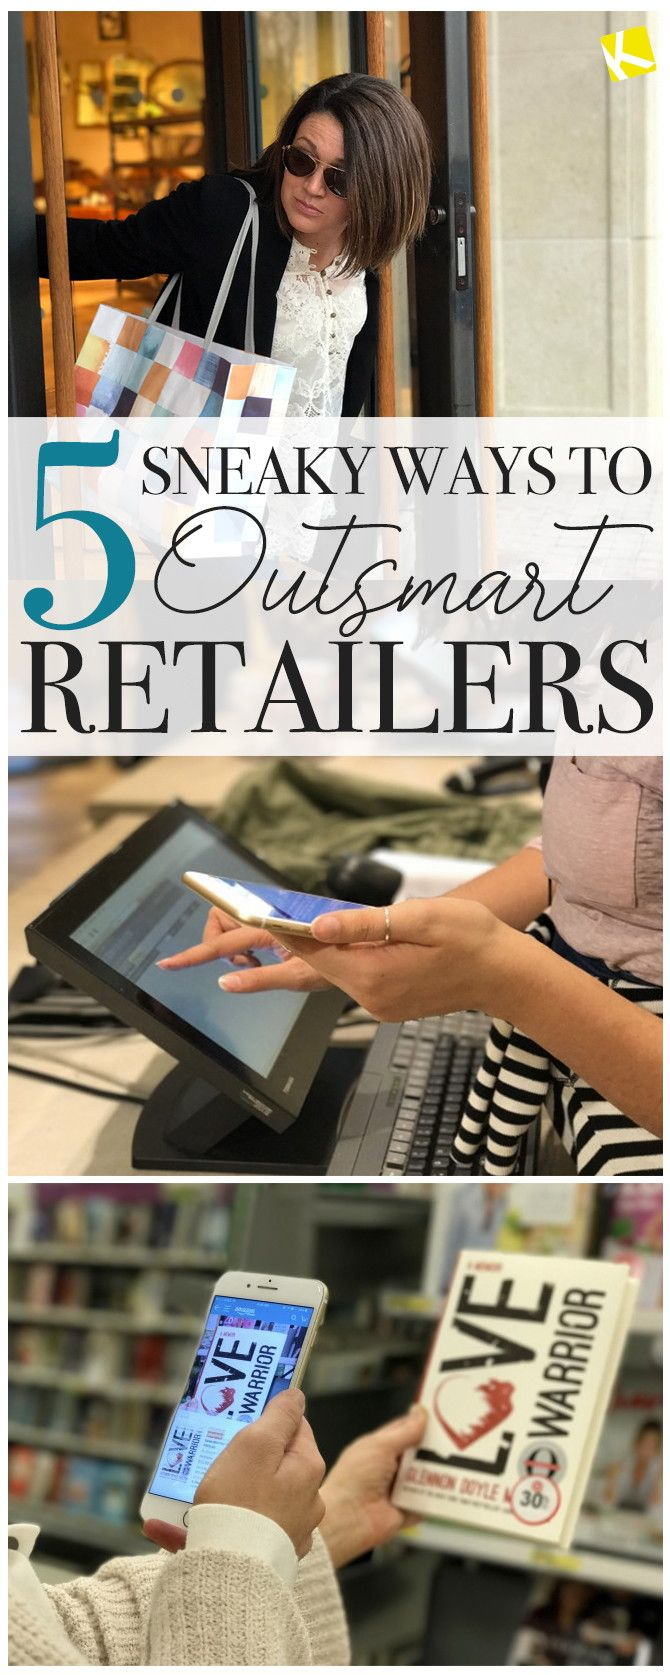 5 Sneaky Ways to Outsmart Retailers (AND SAVE $$!)